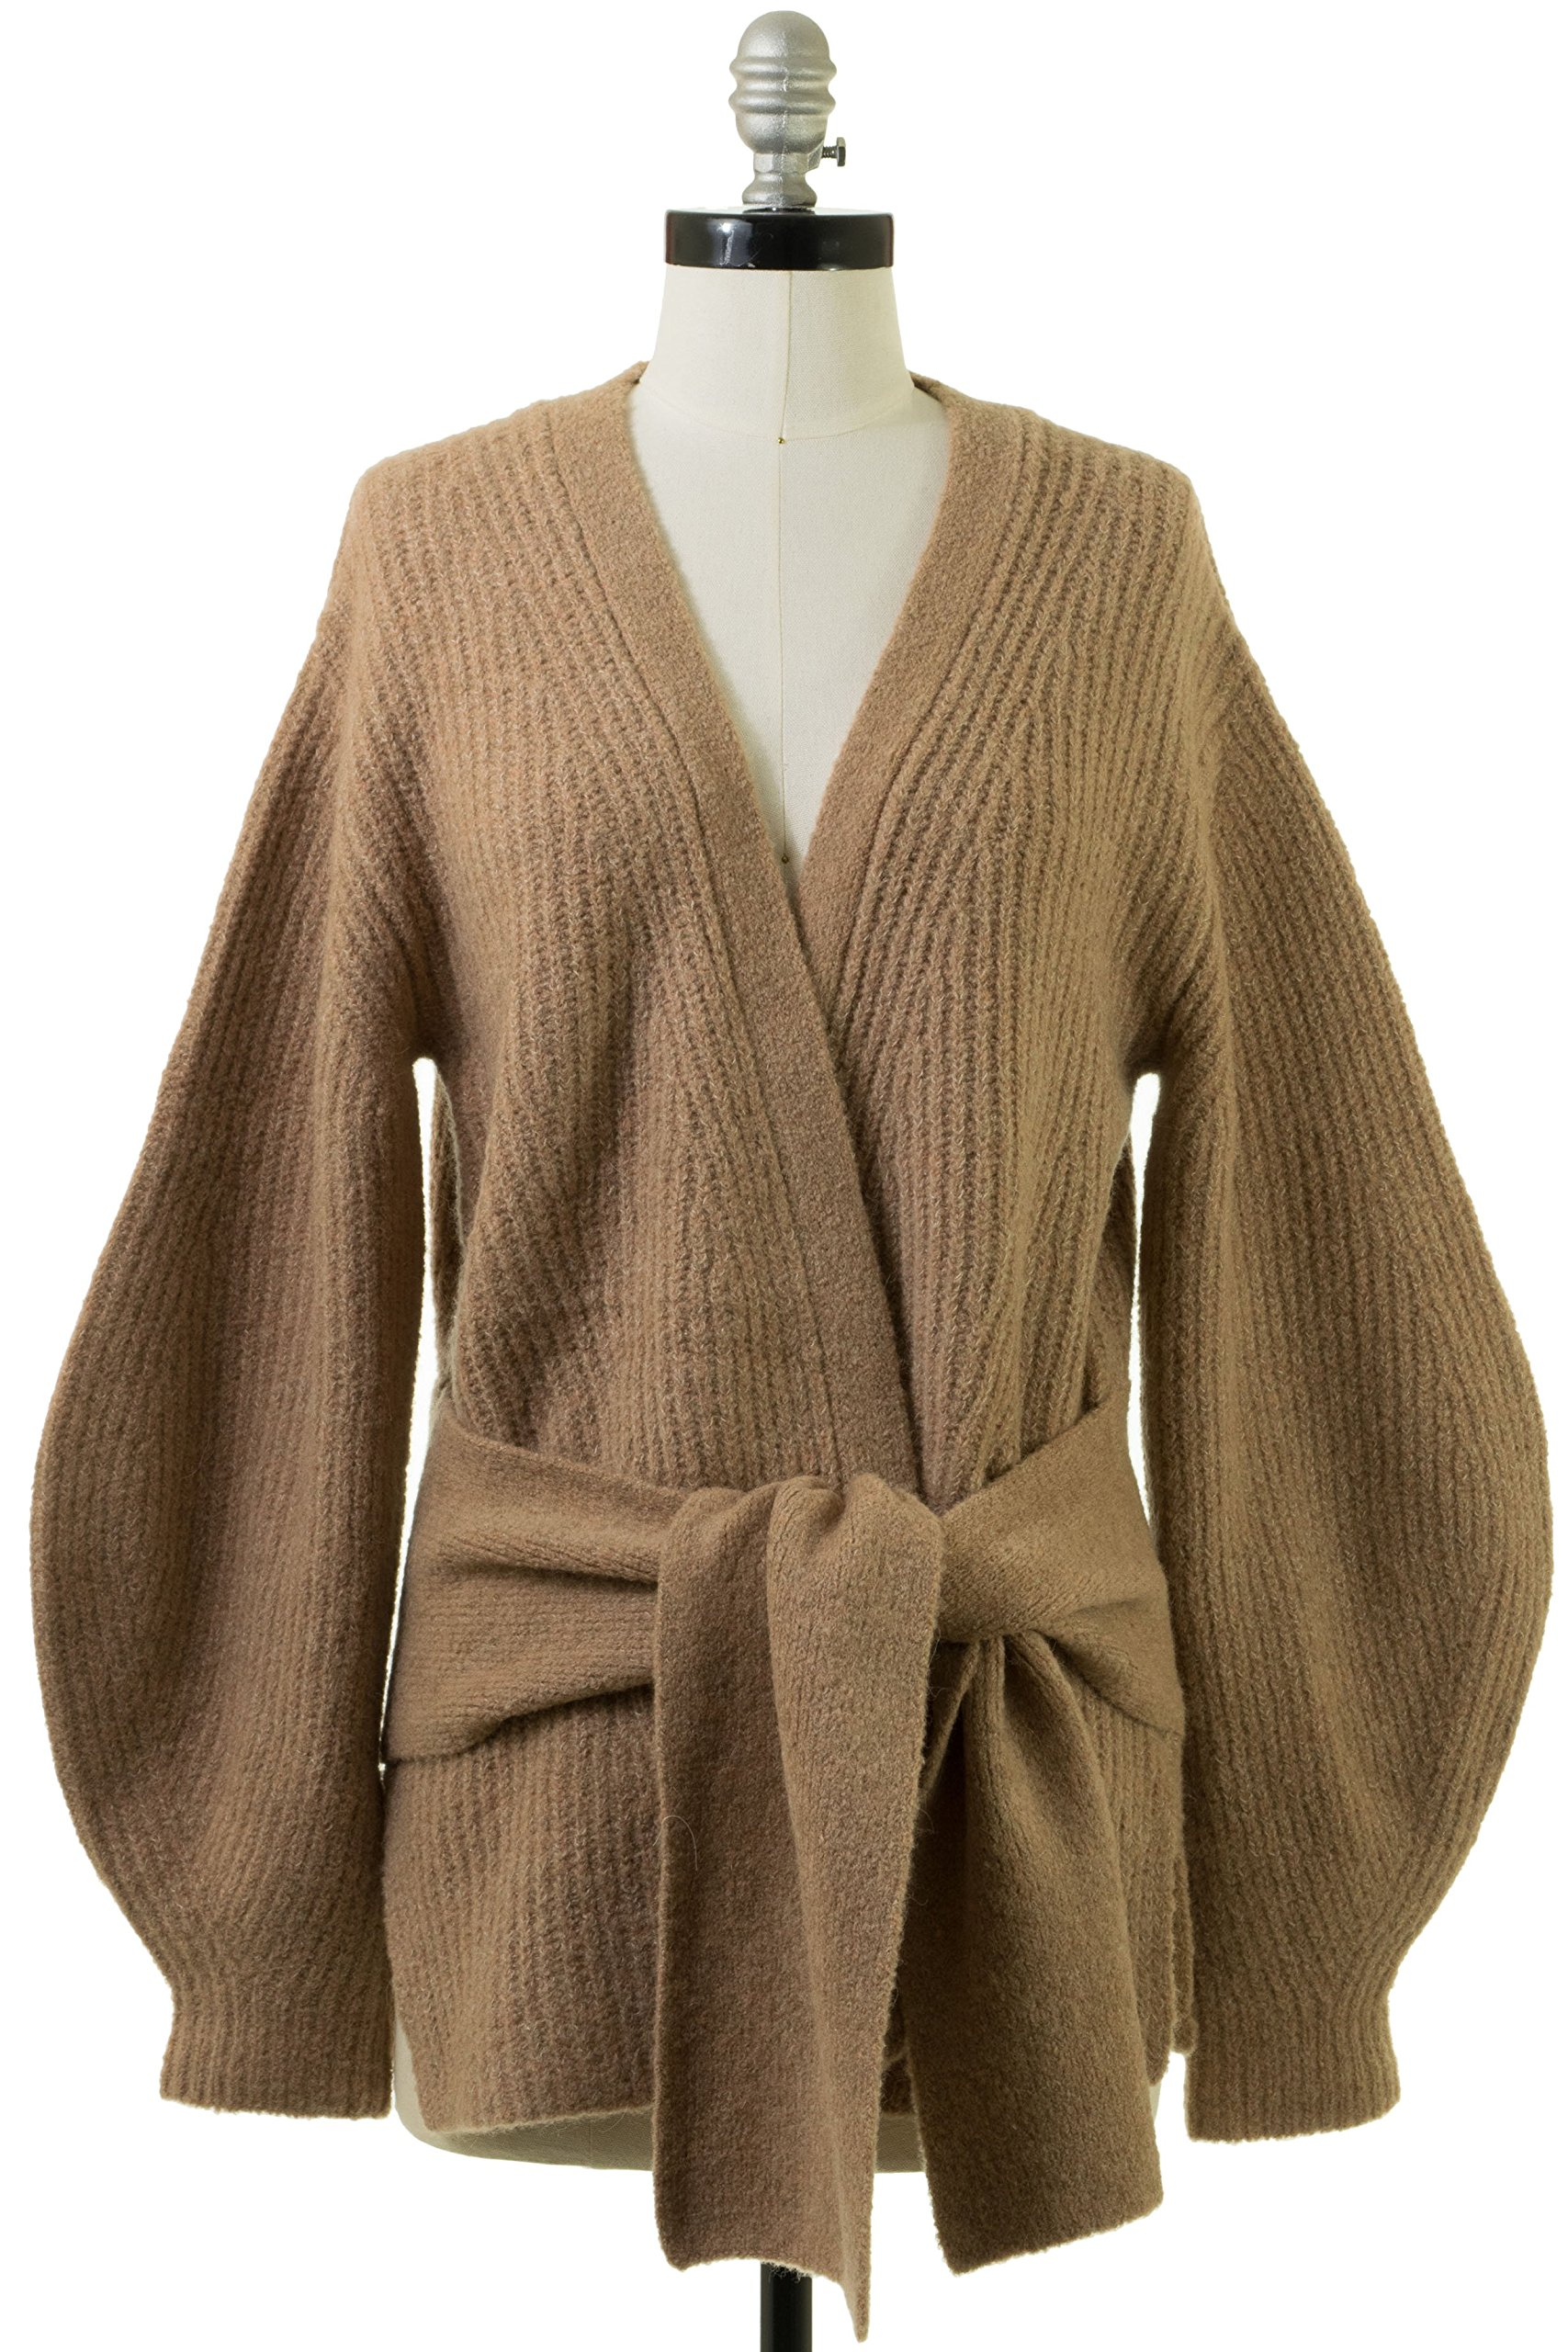 Brochu Walker Hansen Belted Cardigan in Amber Clay Multi by Brochu Walker